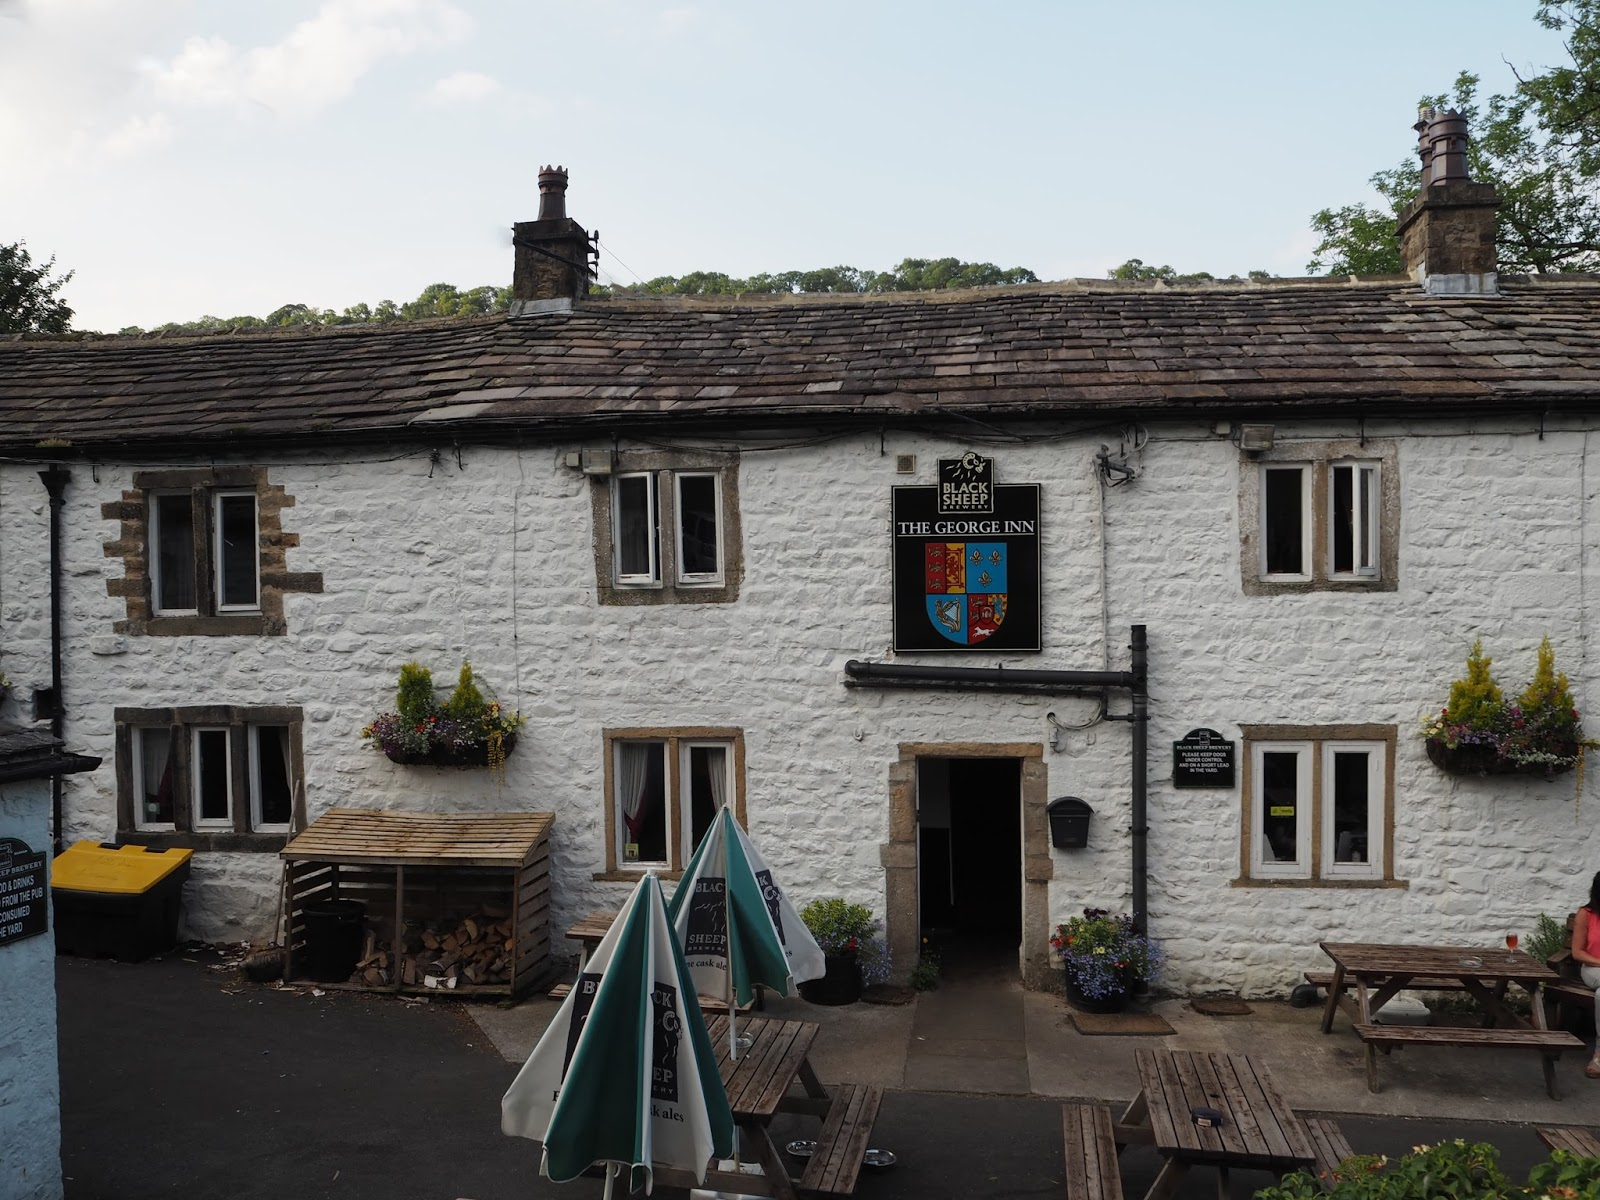 Review of The George Inn, Hubberholme, Skipton, North Yorkshire, Yorkshire Dales pub